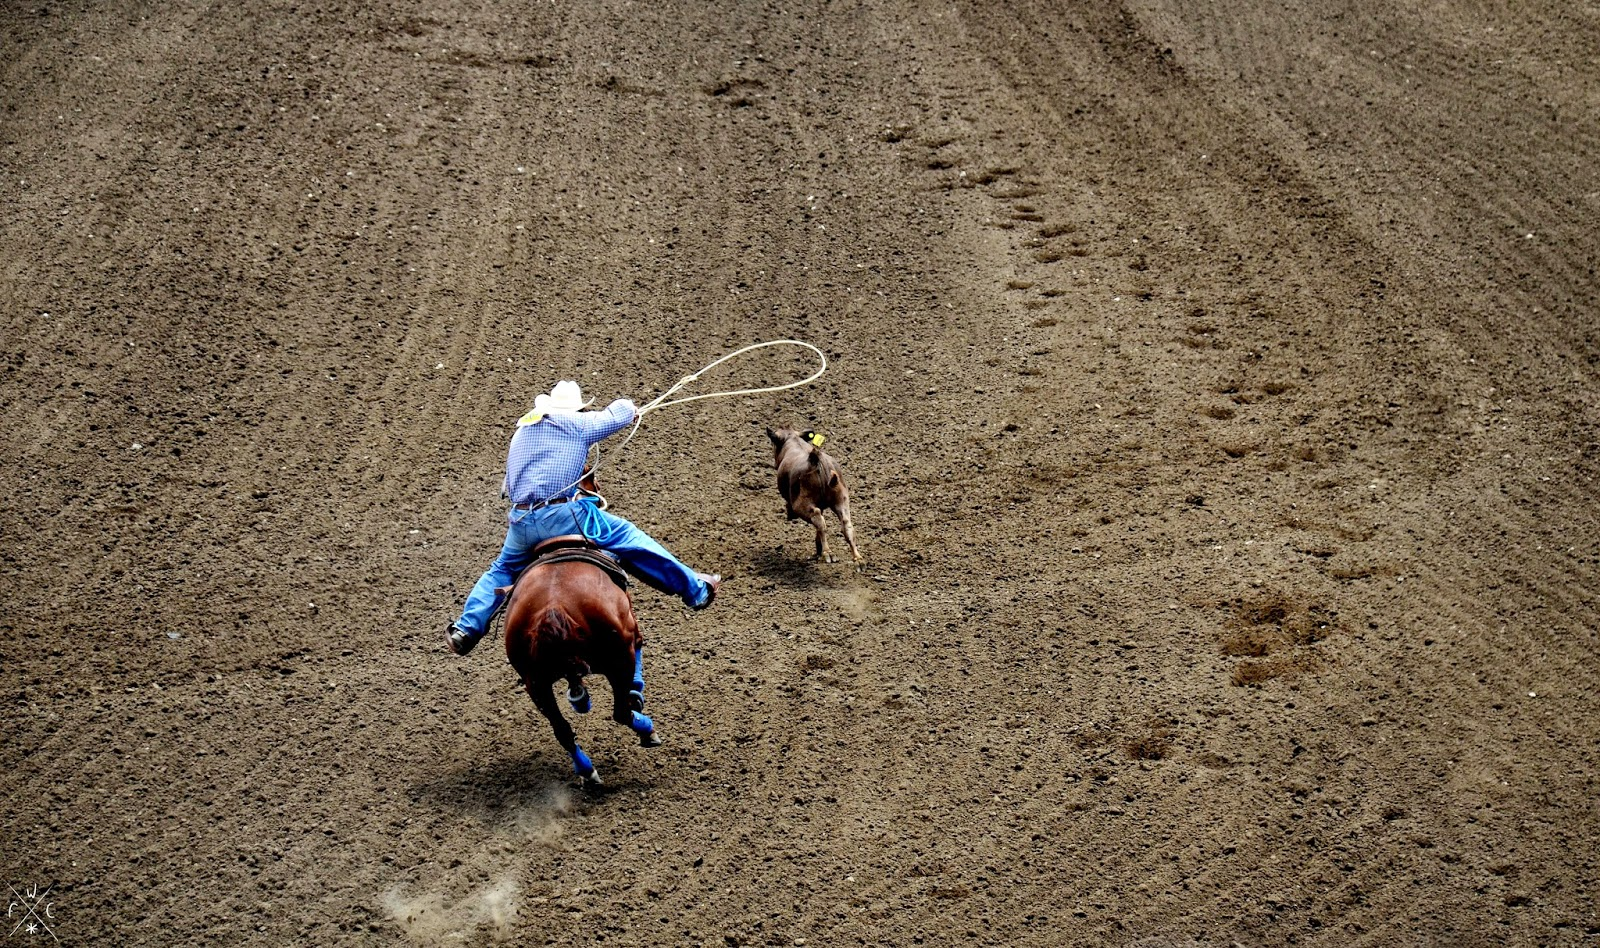 Rodeo - Salinas, Californie, USA